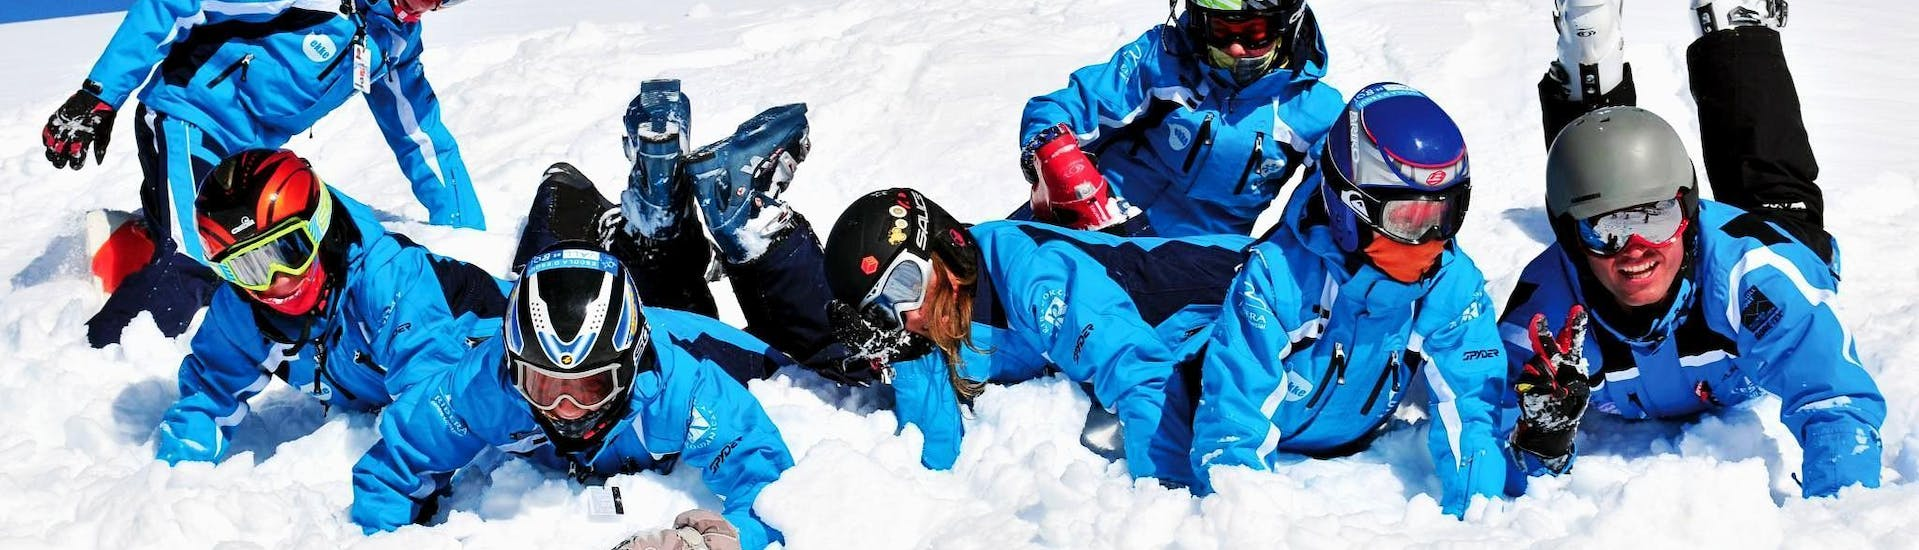 kids-ski-lessons-from-4-years-for-all-levels-holidays-escola-vall-de-boi-hero-1